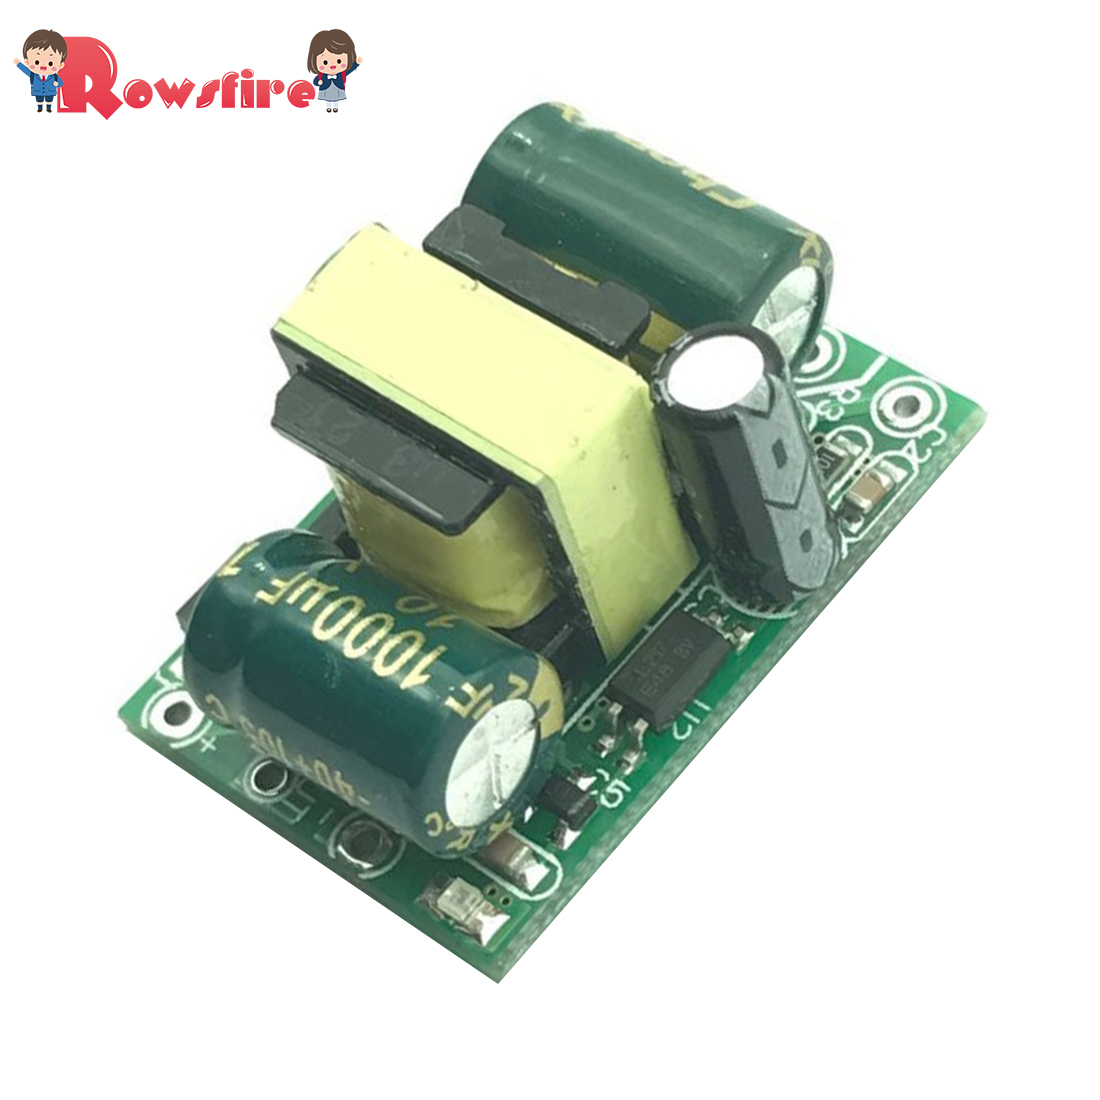 1/3/5 Pcs 5V 700mA(3.5W) 220 To 5V Isolated Switching Power Supply Module /AC-DC Step Down Module